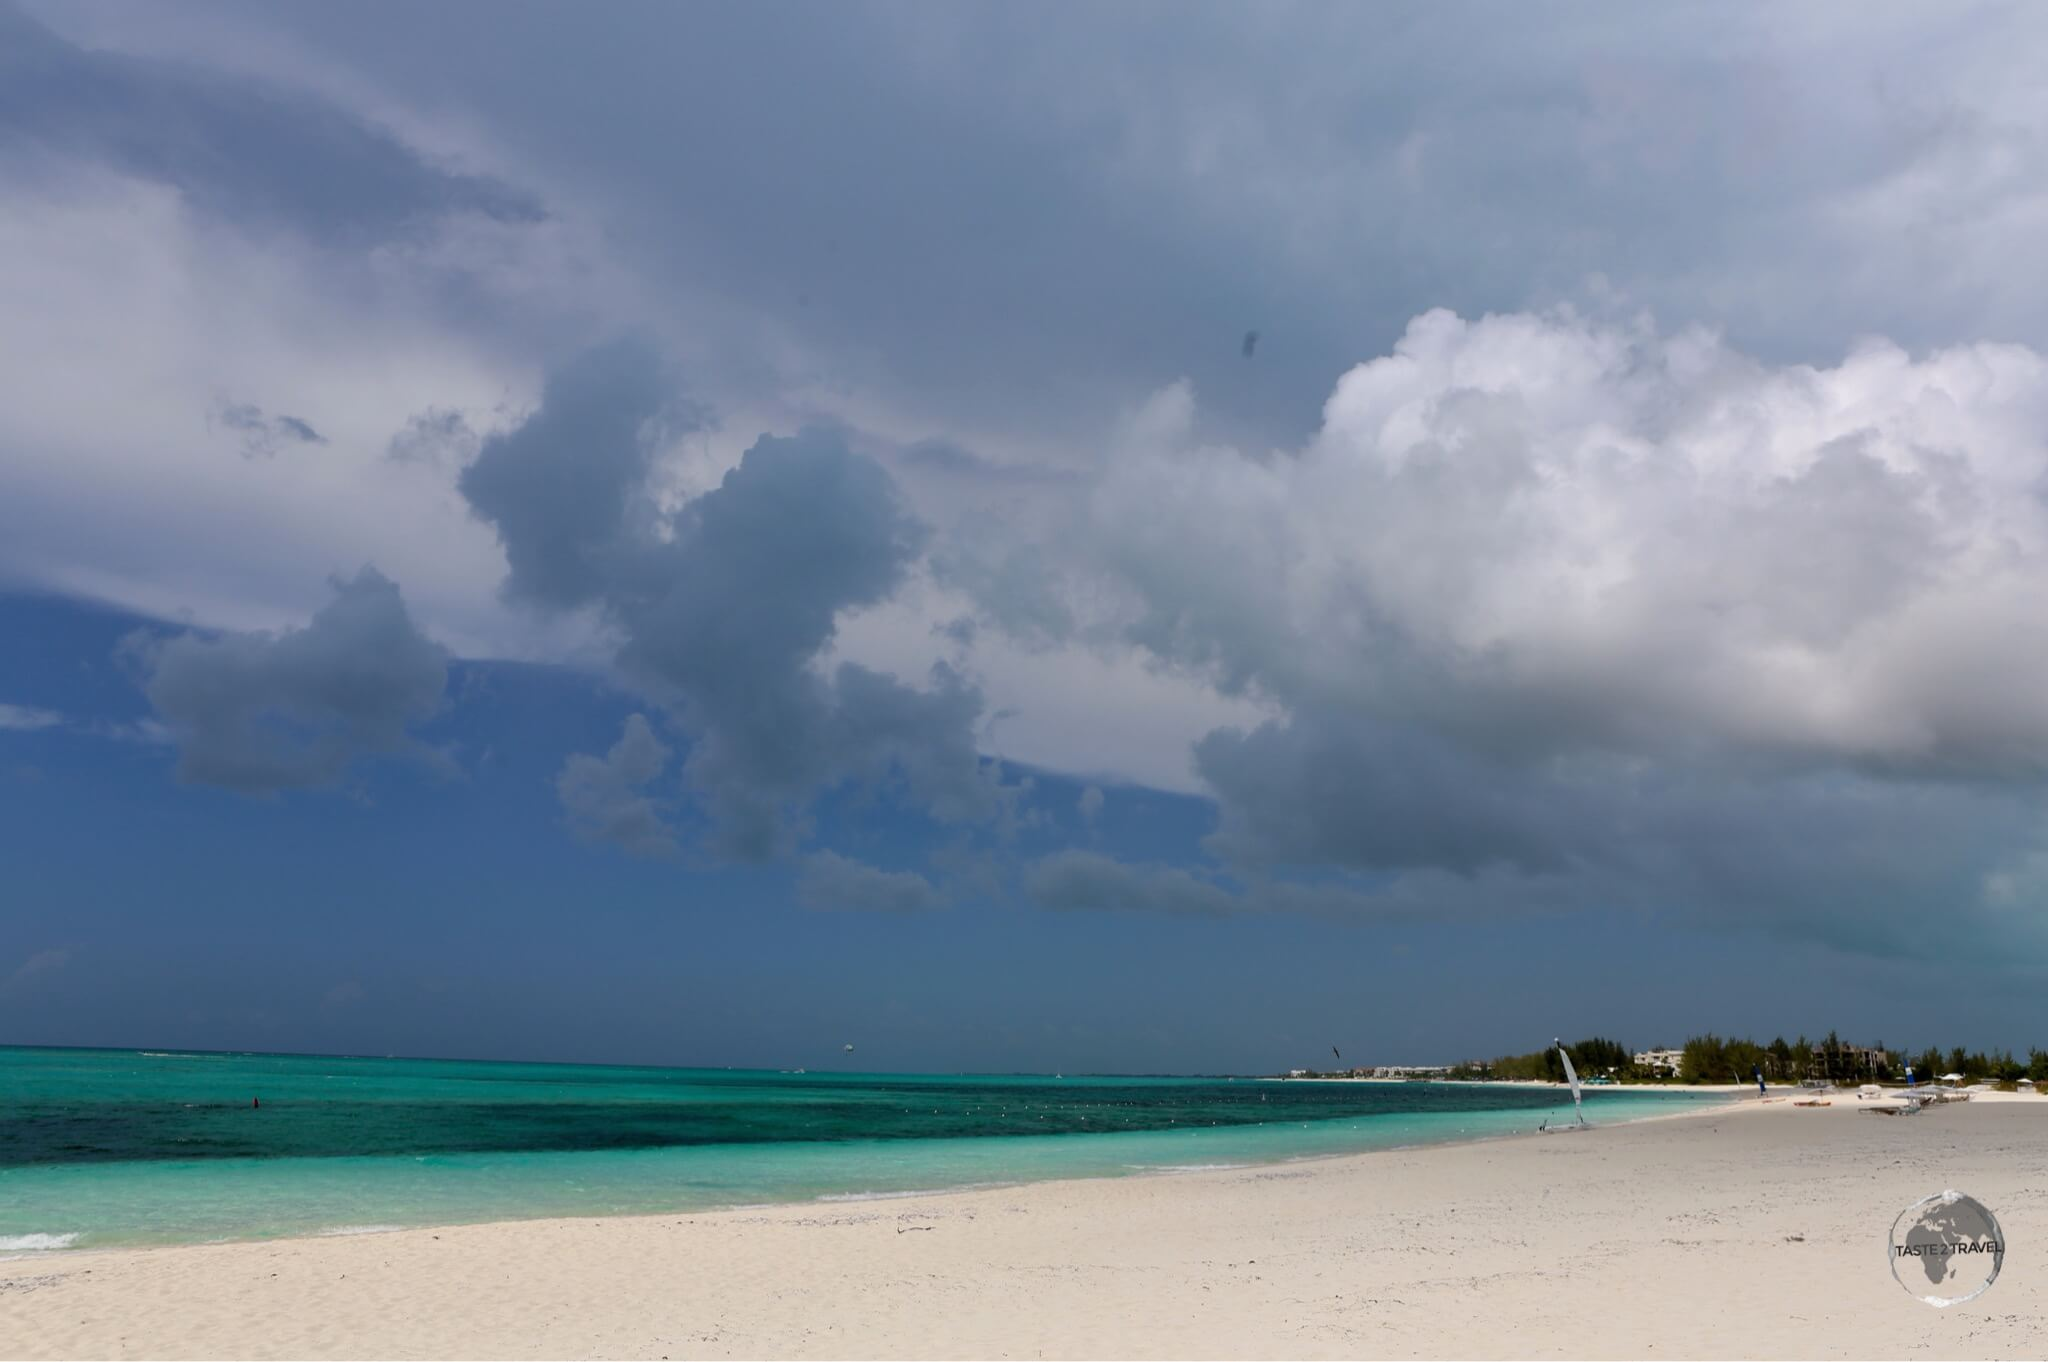 Stormy skies over 'The Bight', my local beach on Provo island.